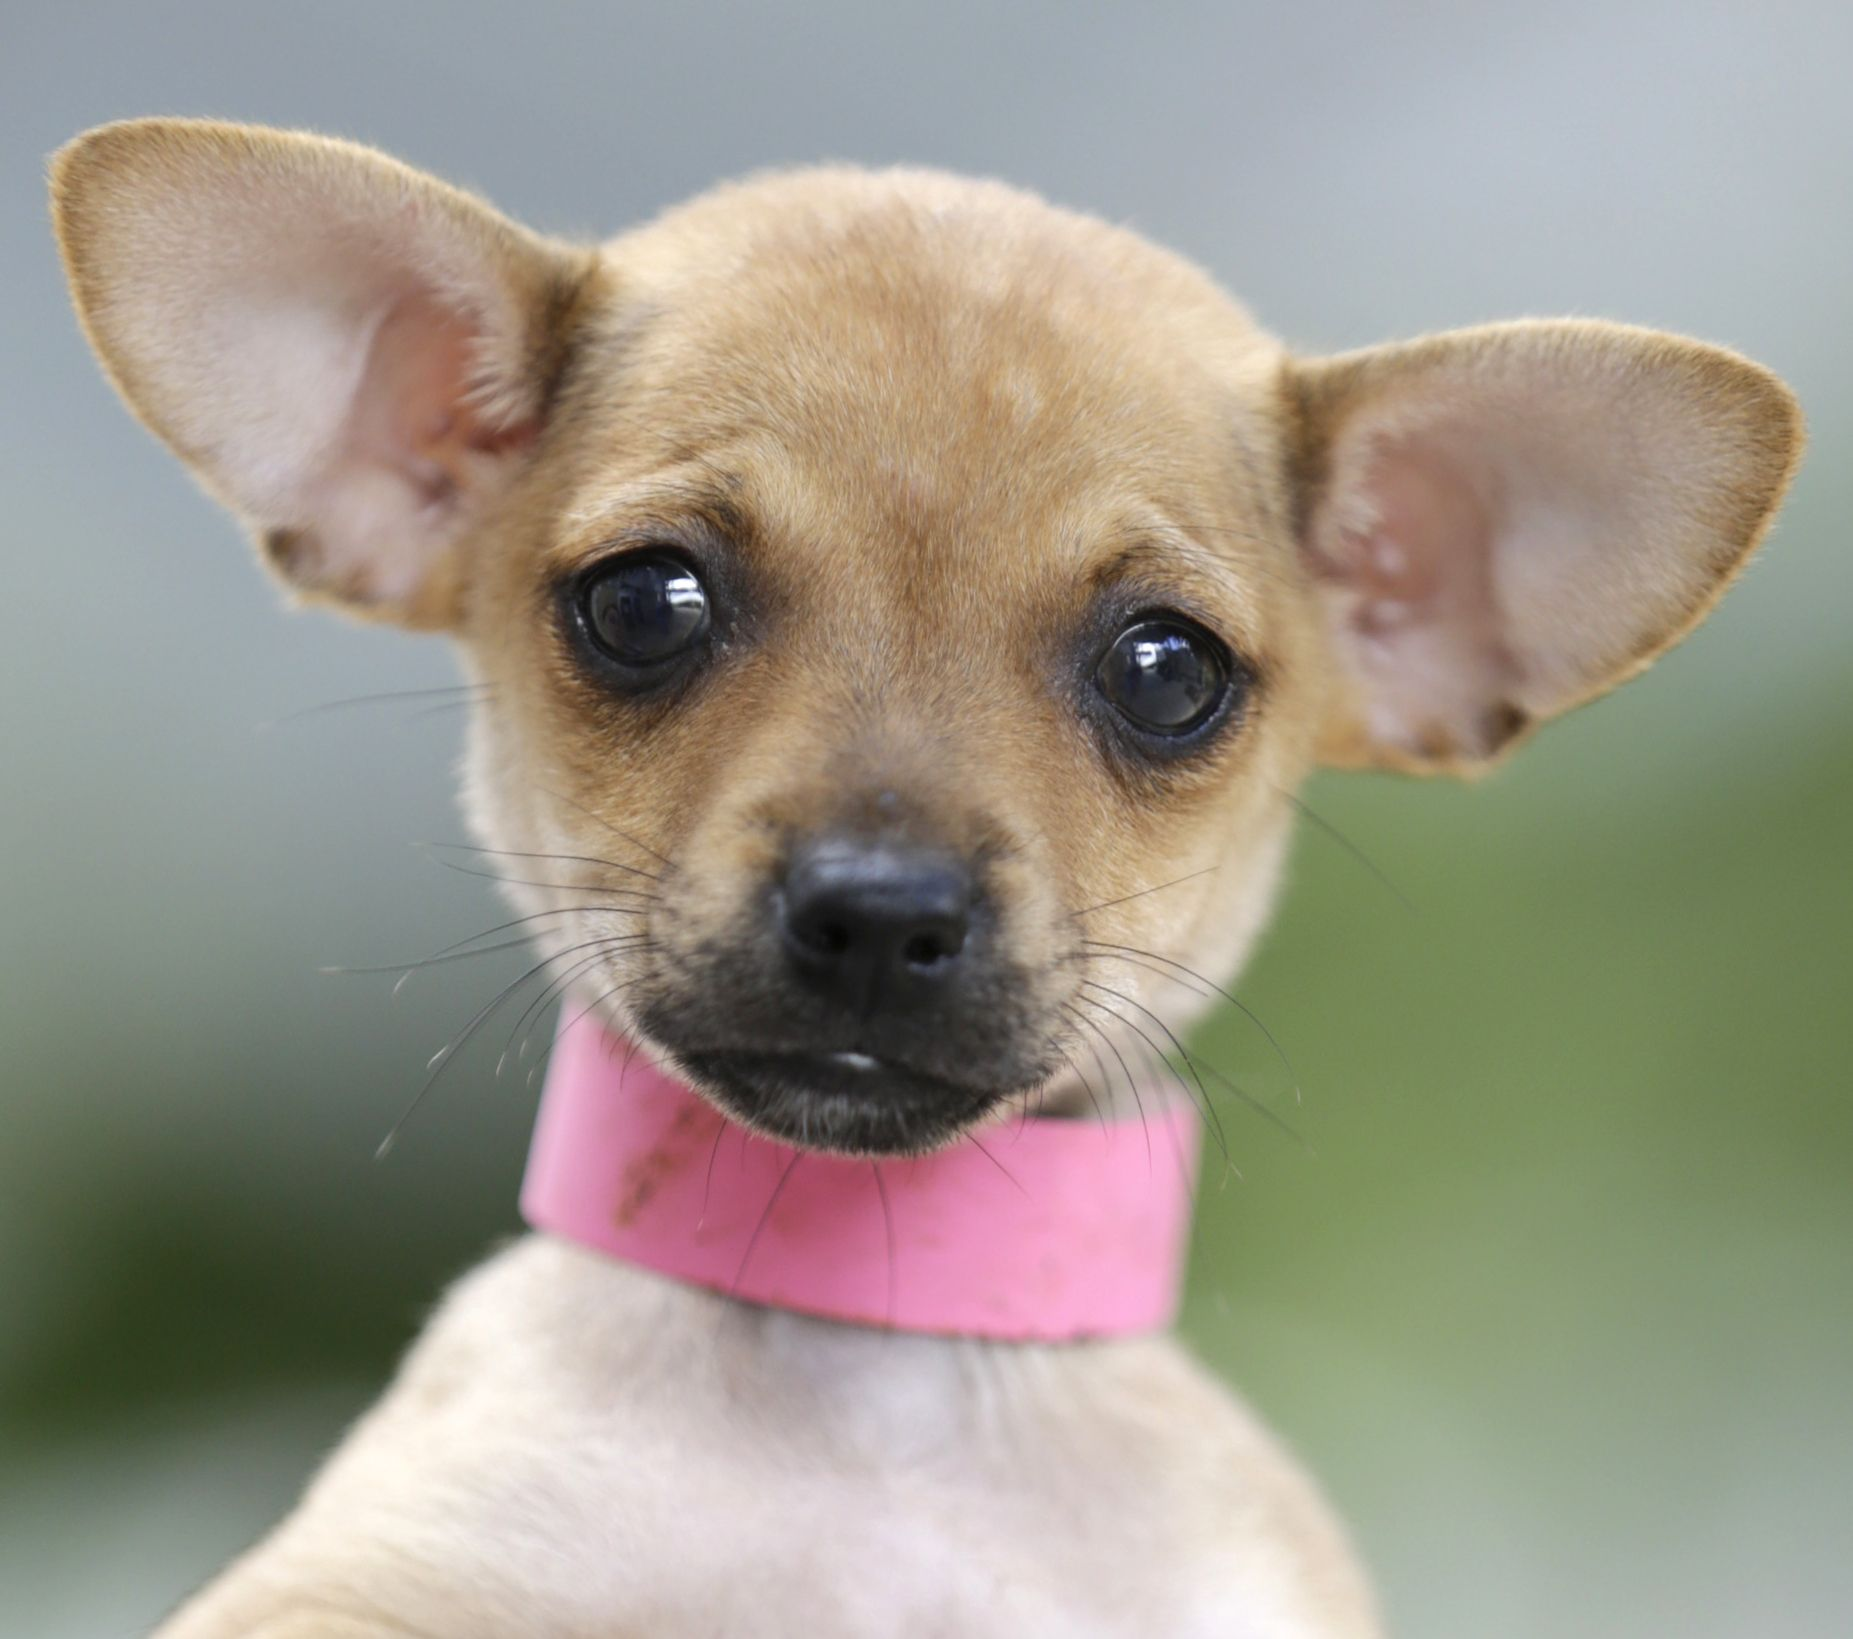 Bambi See More Dogs Cats On Www Sahumane Org Follow Us On